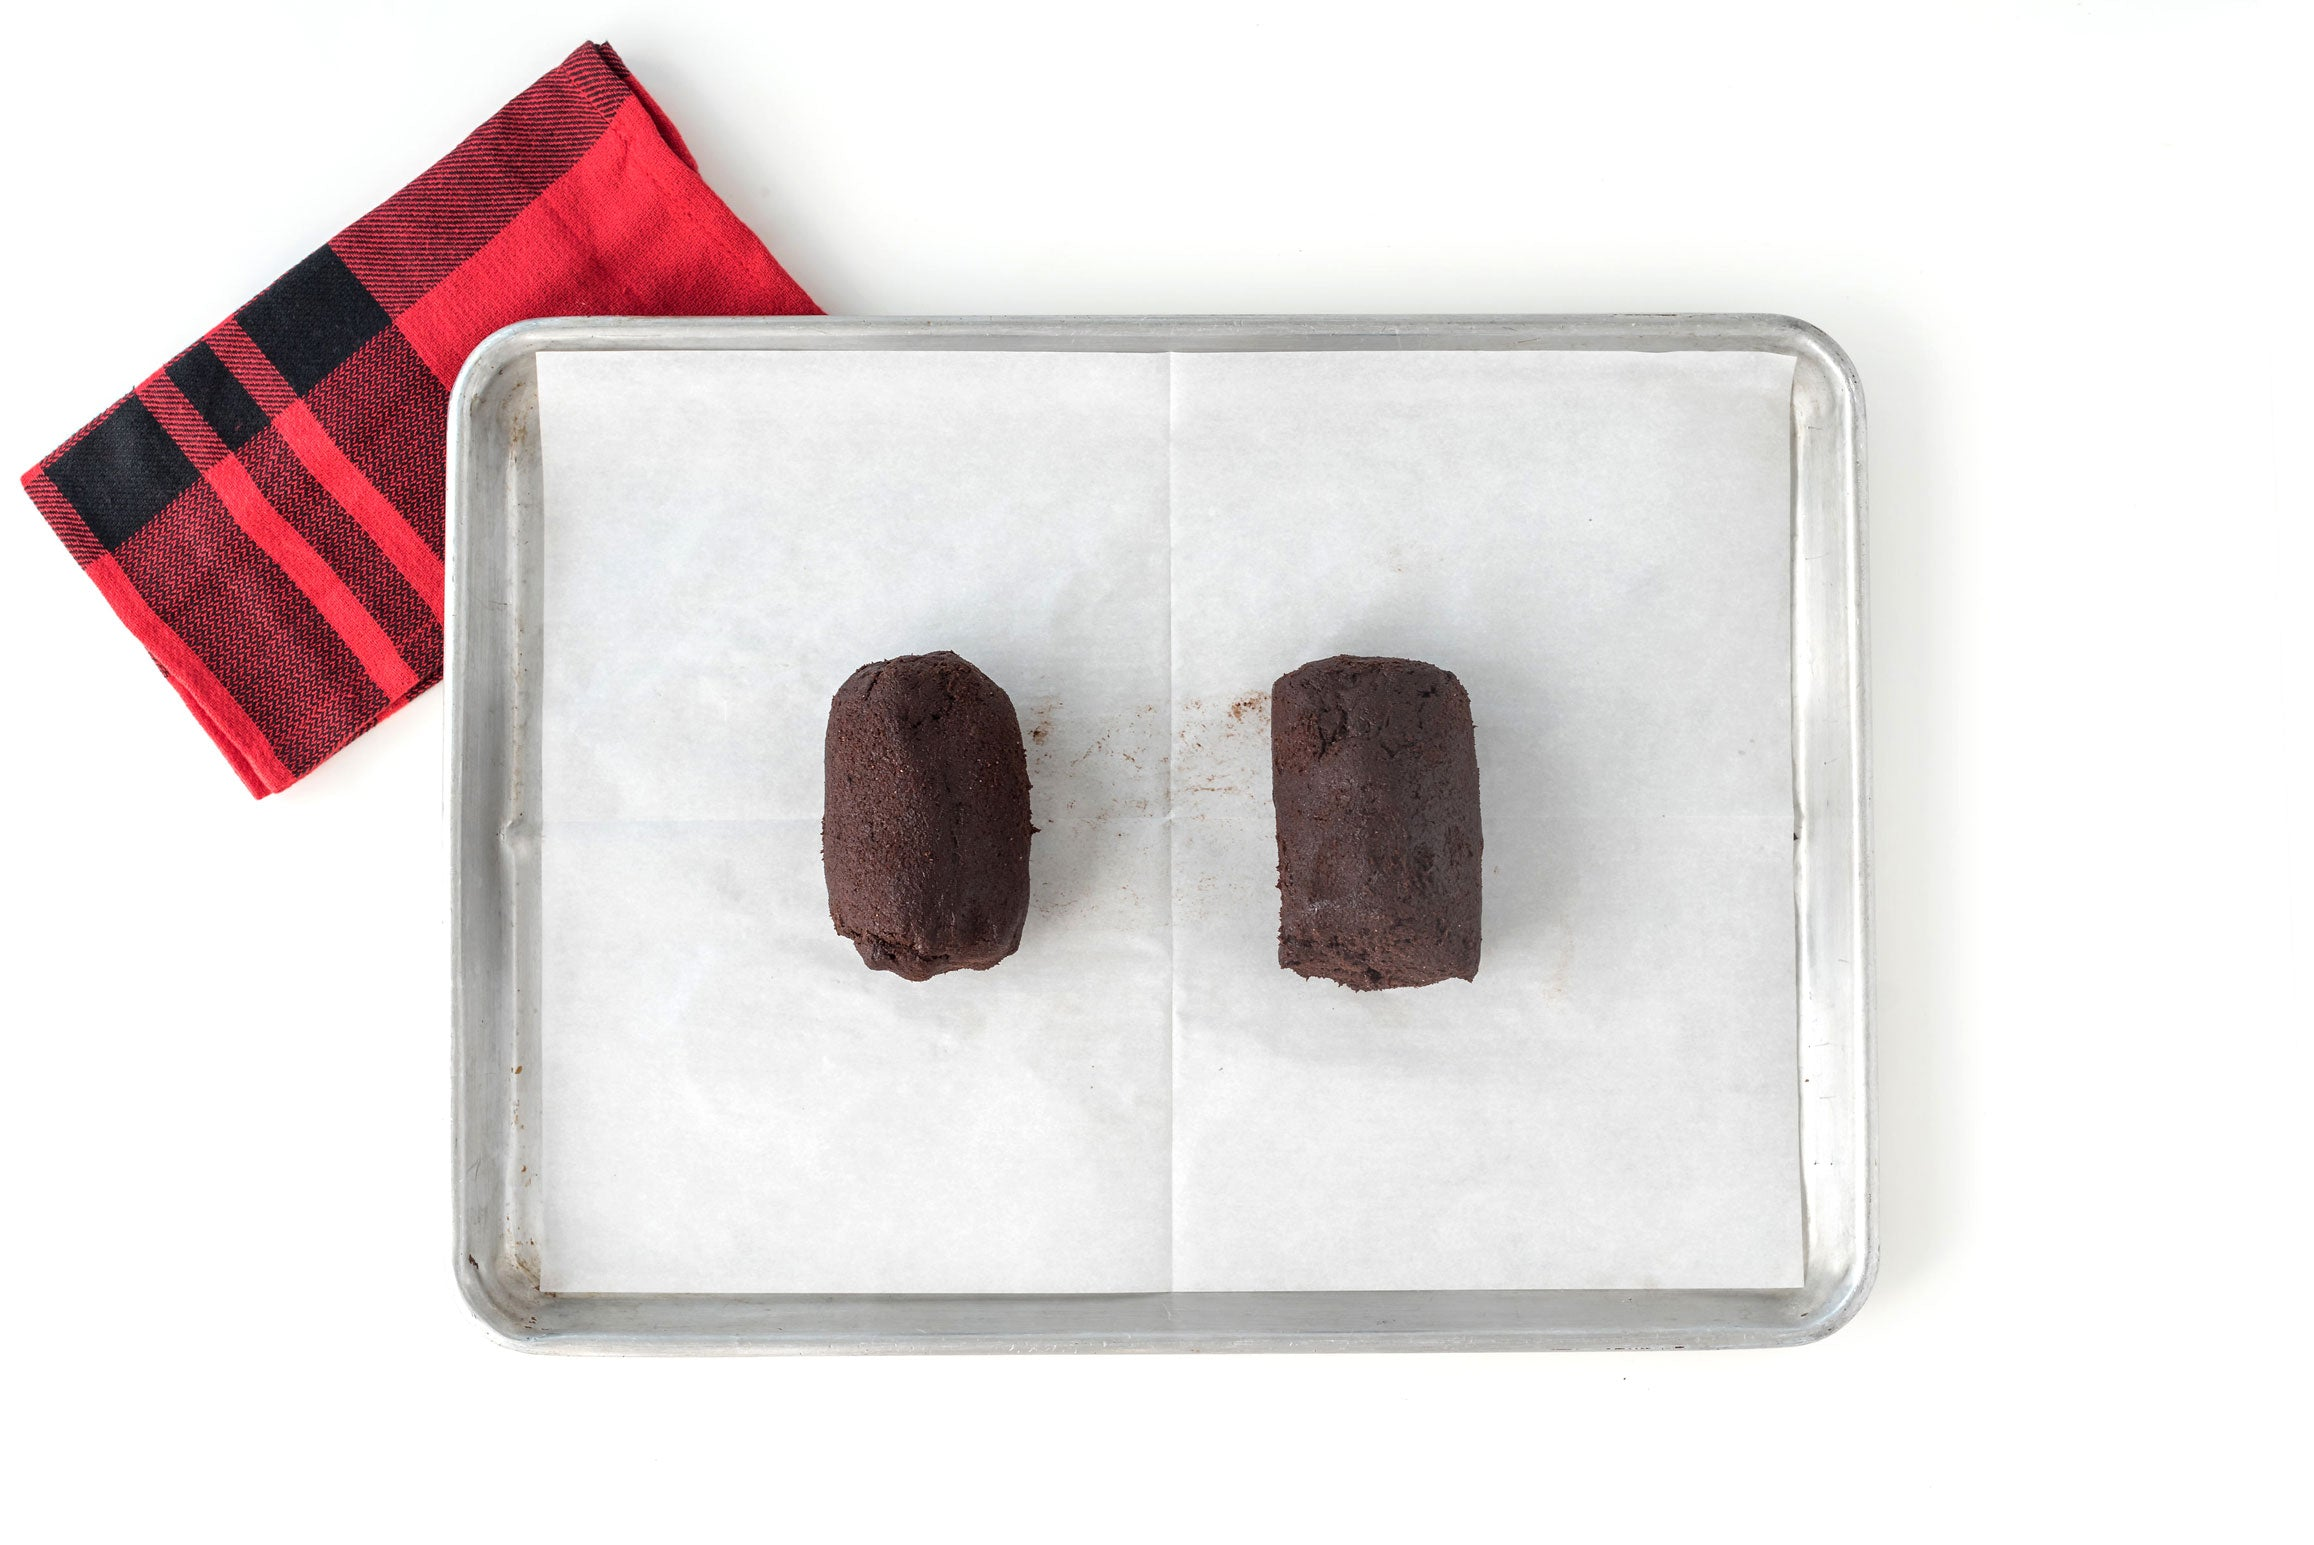 Image of two balls of Miss Jones Baking Co Easy Chocolate Peppermint Cake Mix Biscotti dough on a baking sheet next to a red towel